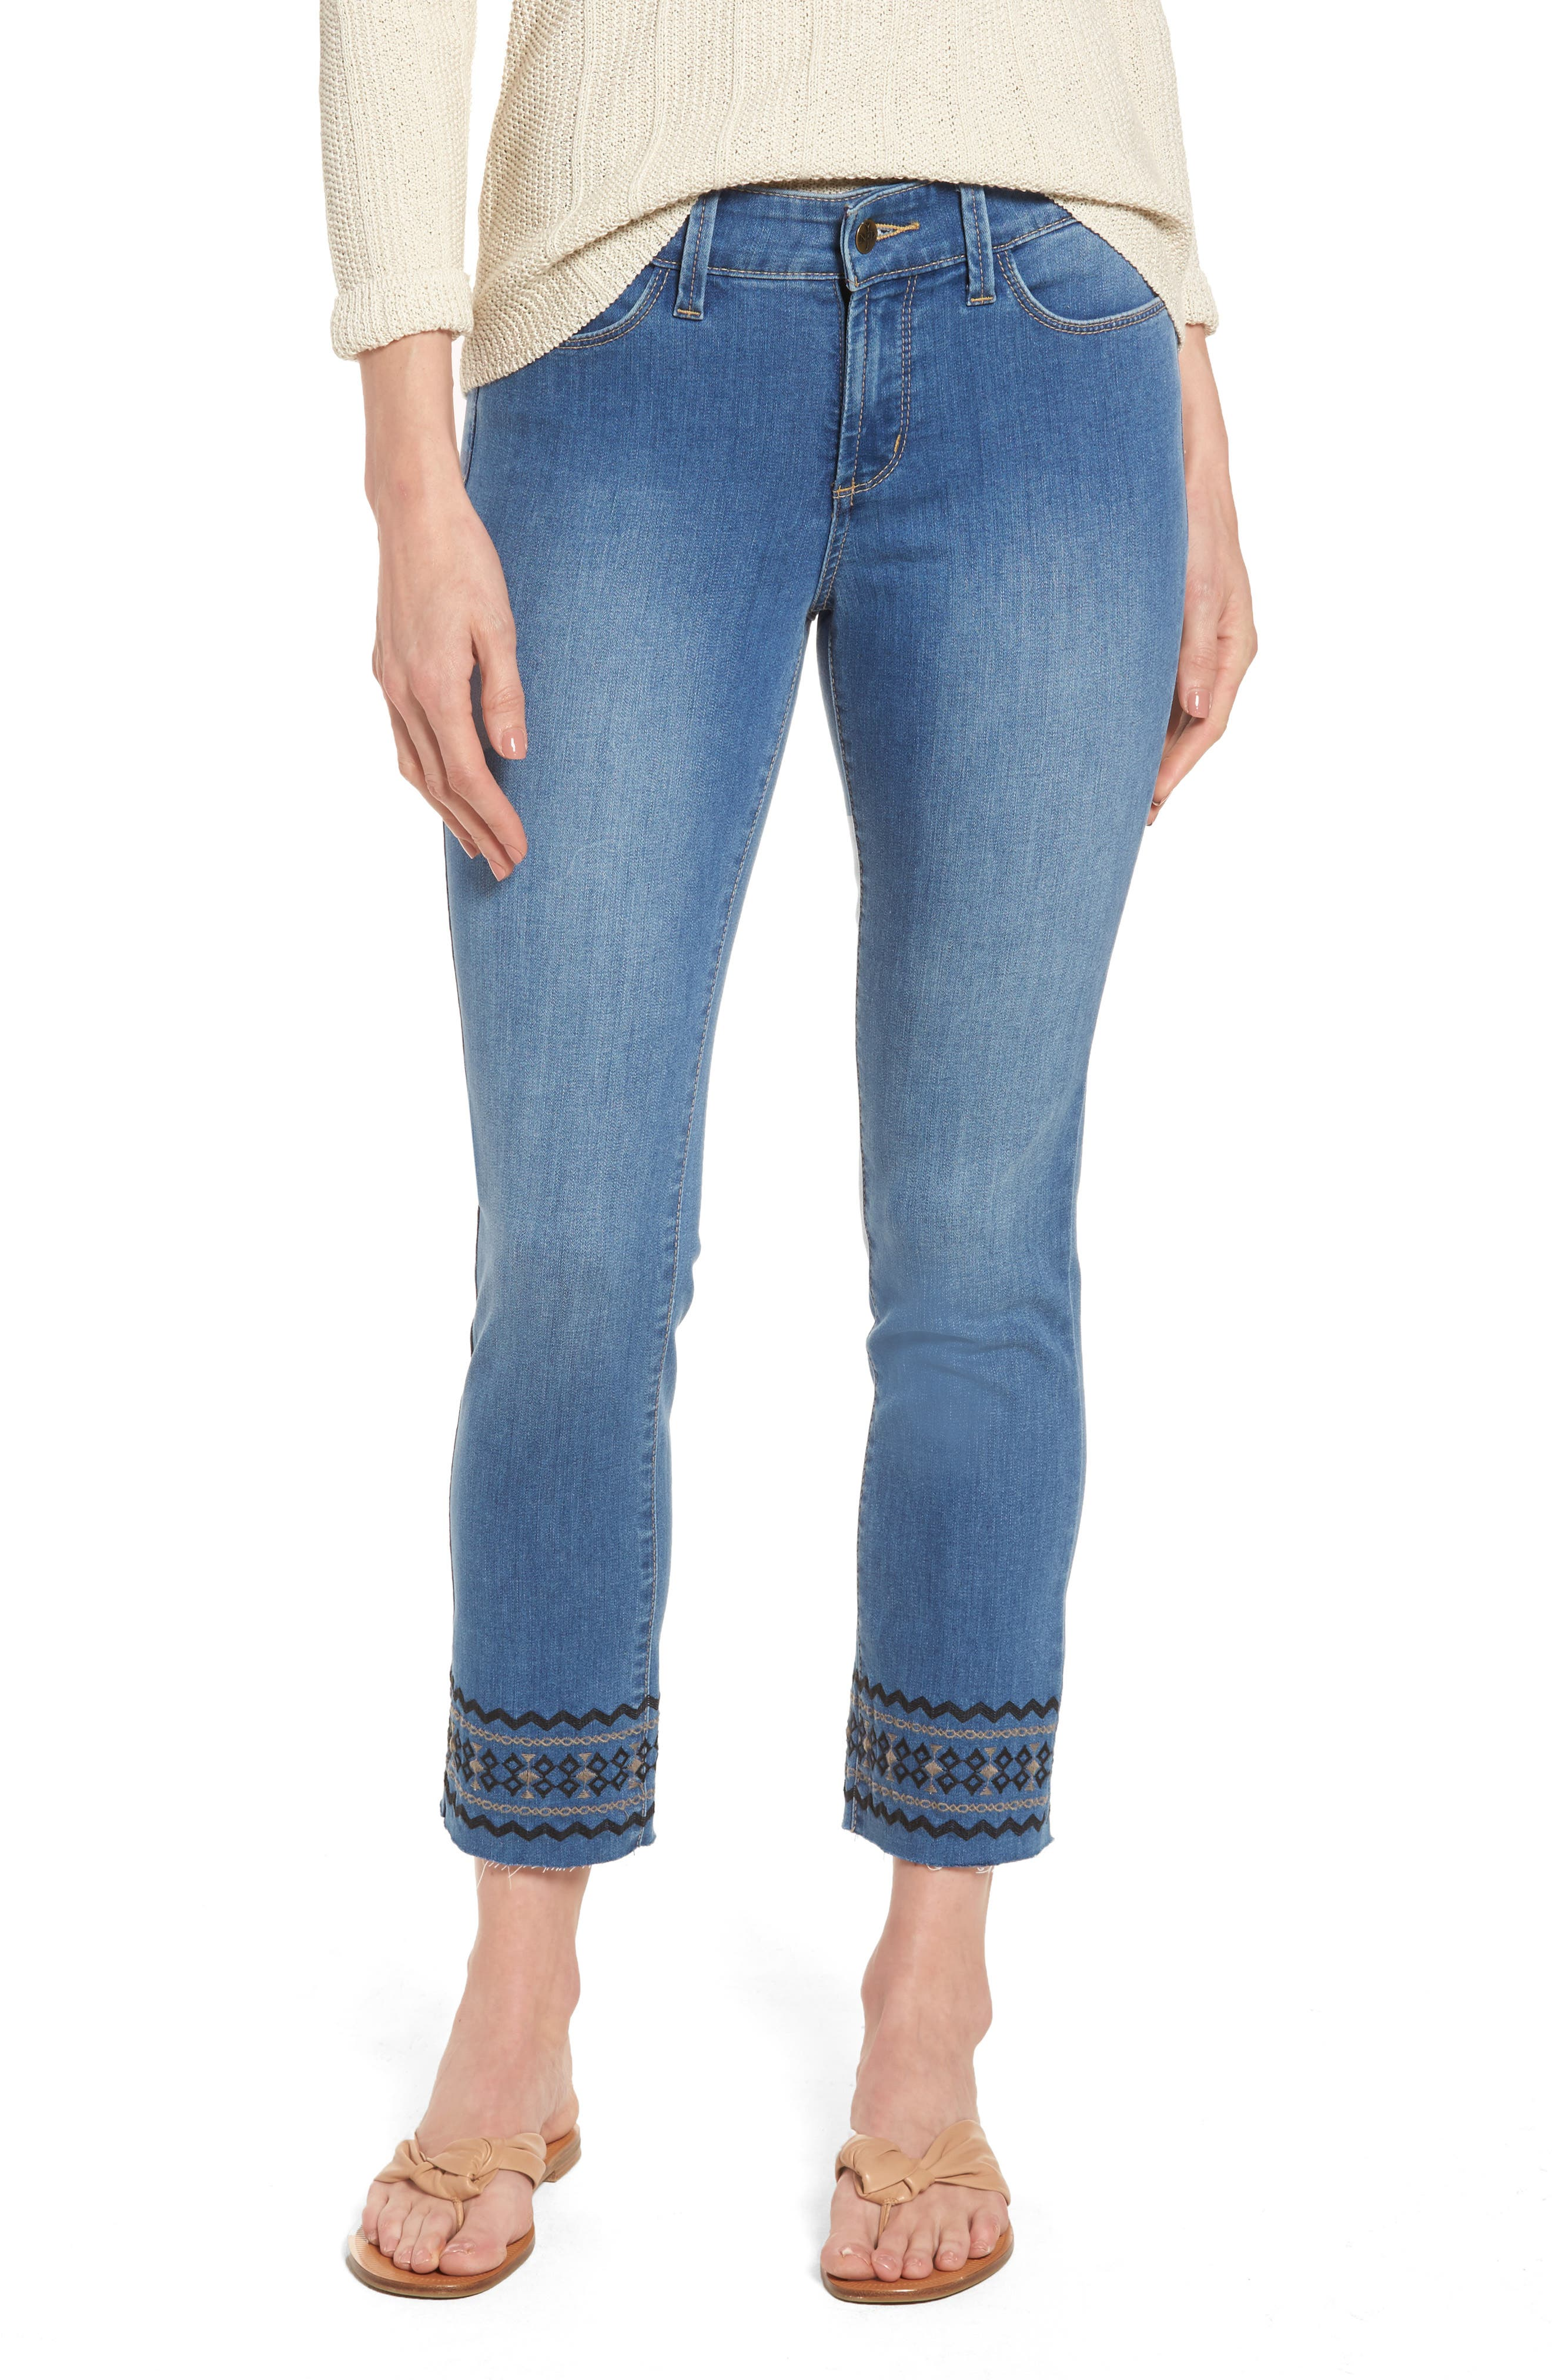 Main Image - NYDJ Sheri Embroidered Stretch Slim Crop Jeans (Evansdale)